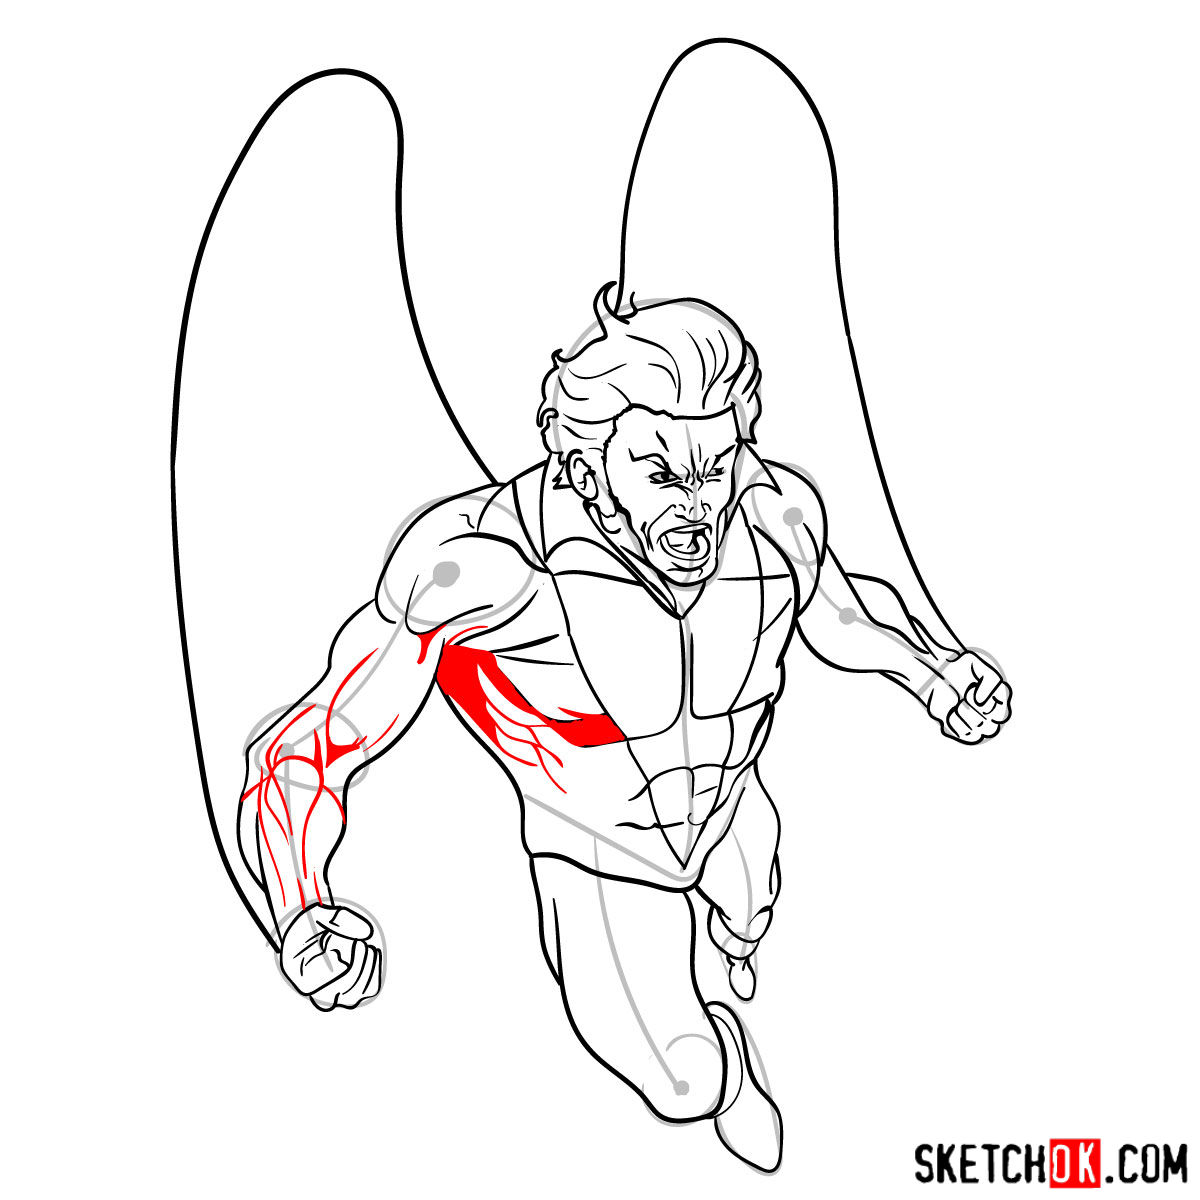 How to draw Banshee mutant from X-Men - step 14